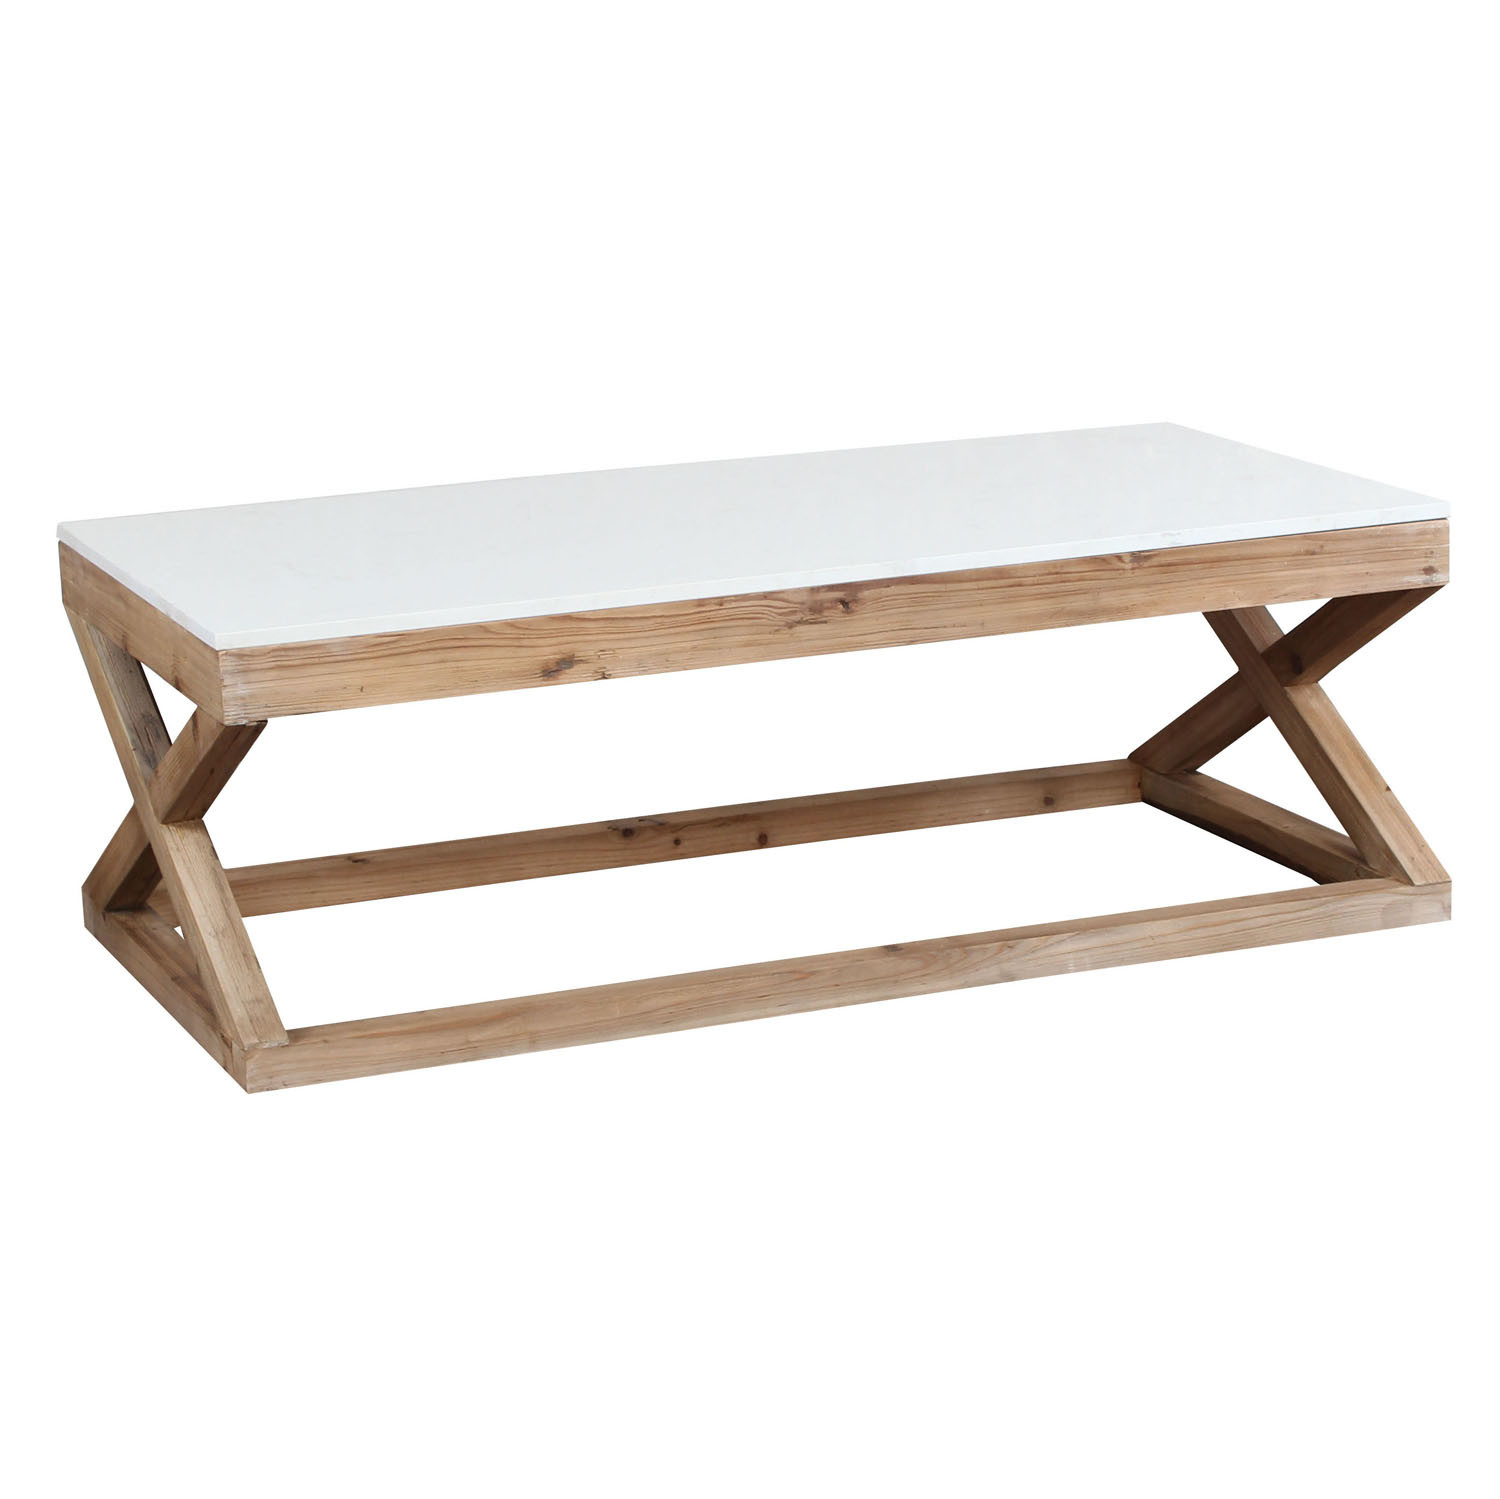 Magnificent Hot Item Cross Leg Rectangular Wood Marble Top Coffee Table Price Squirreltailoven Fun Painted Chair Ideas Images Squirreltailovenorg